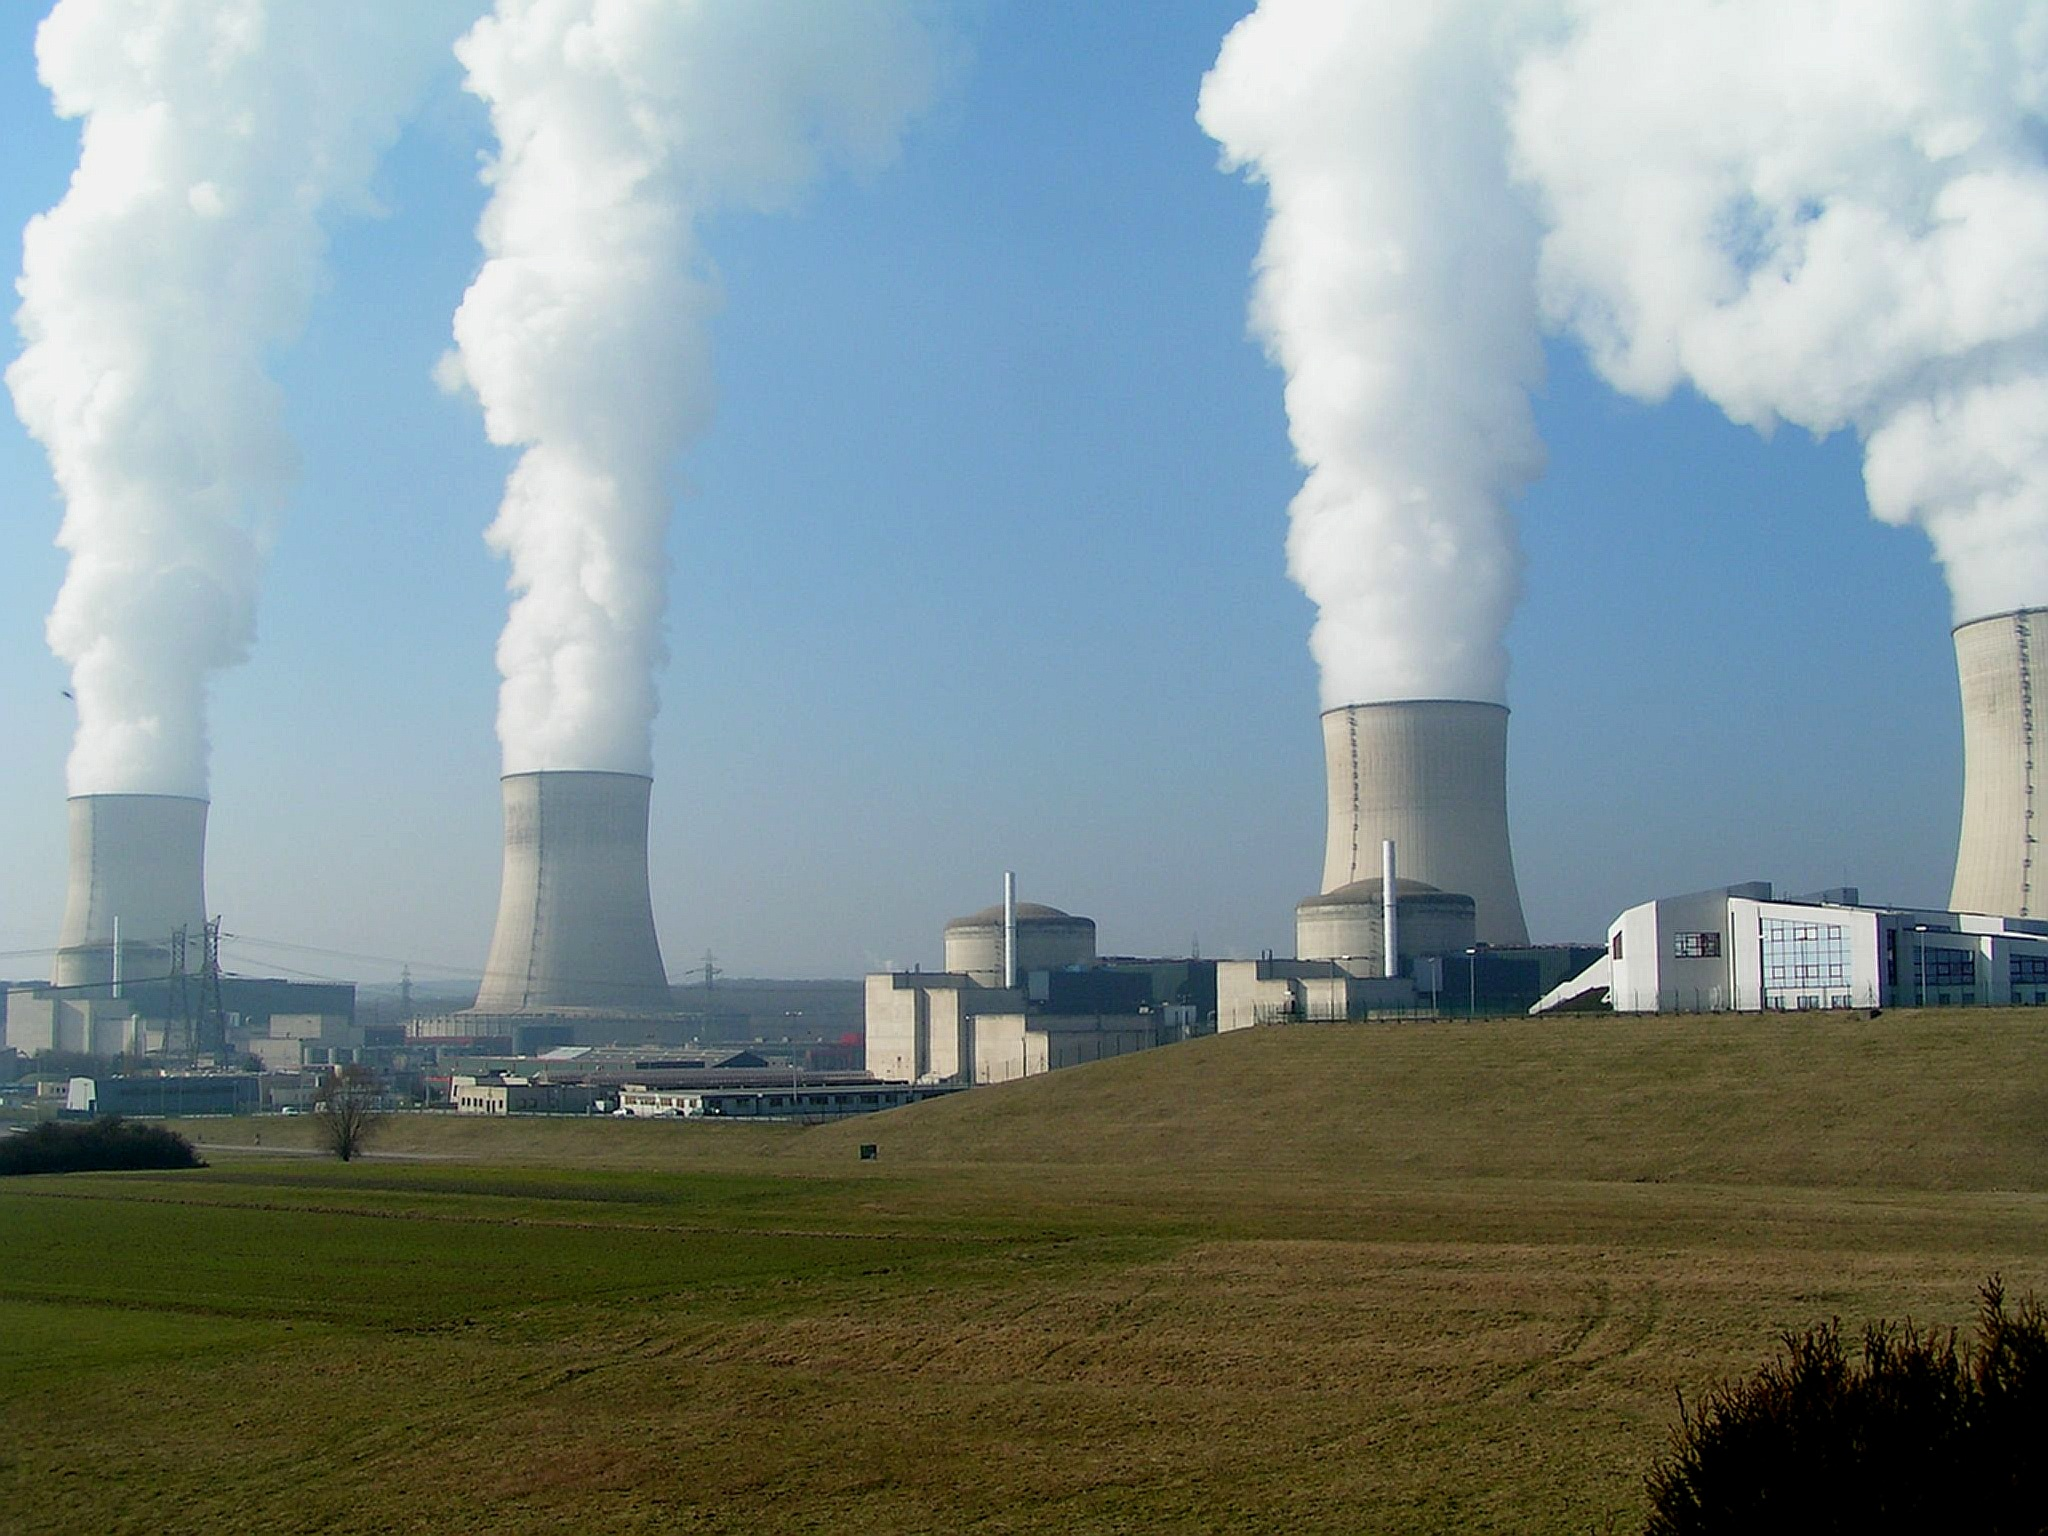 More nuclear plants required to meet carbon goals, MIT study says